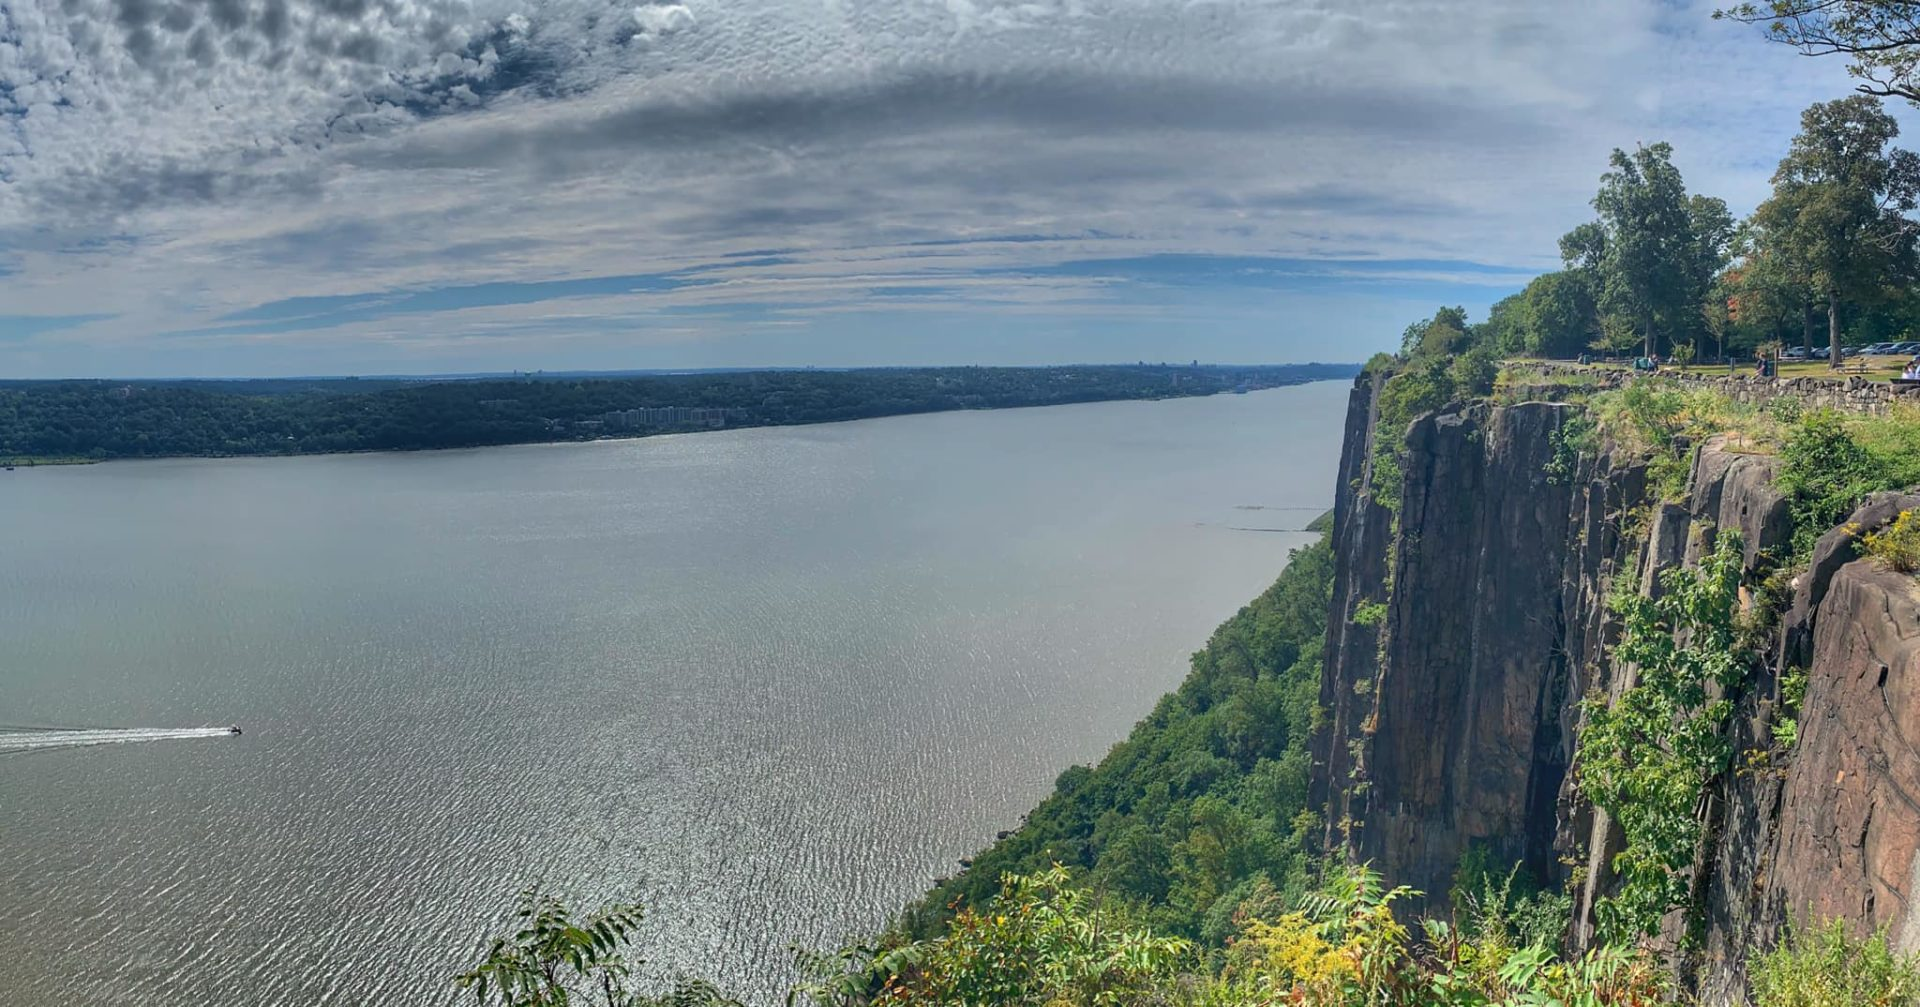 View of the Hudson River from the top of the Palisades